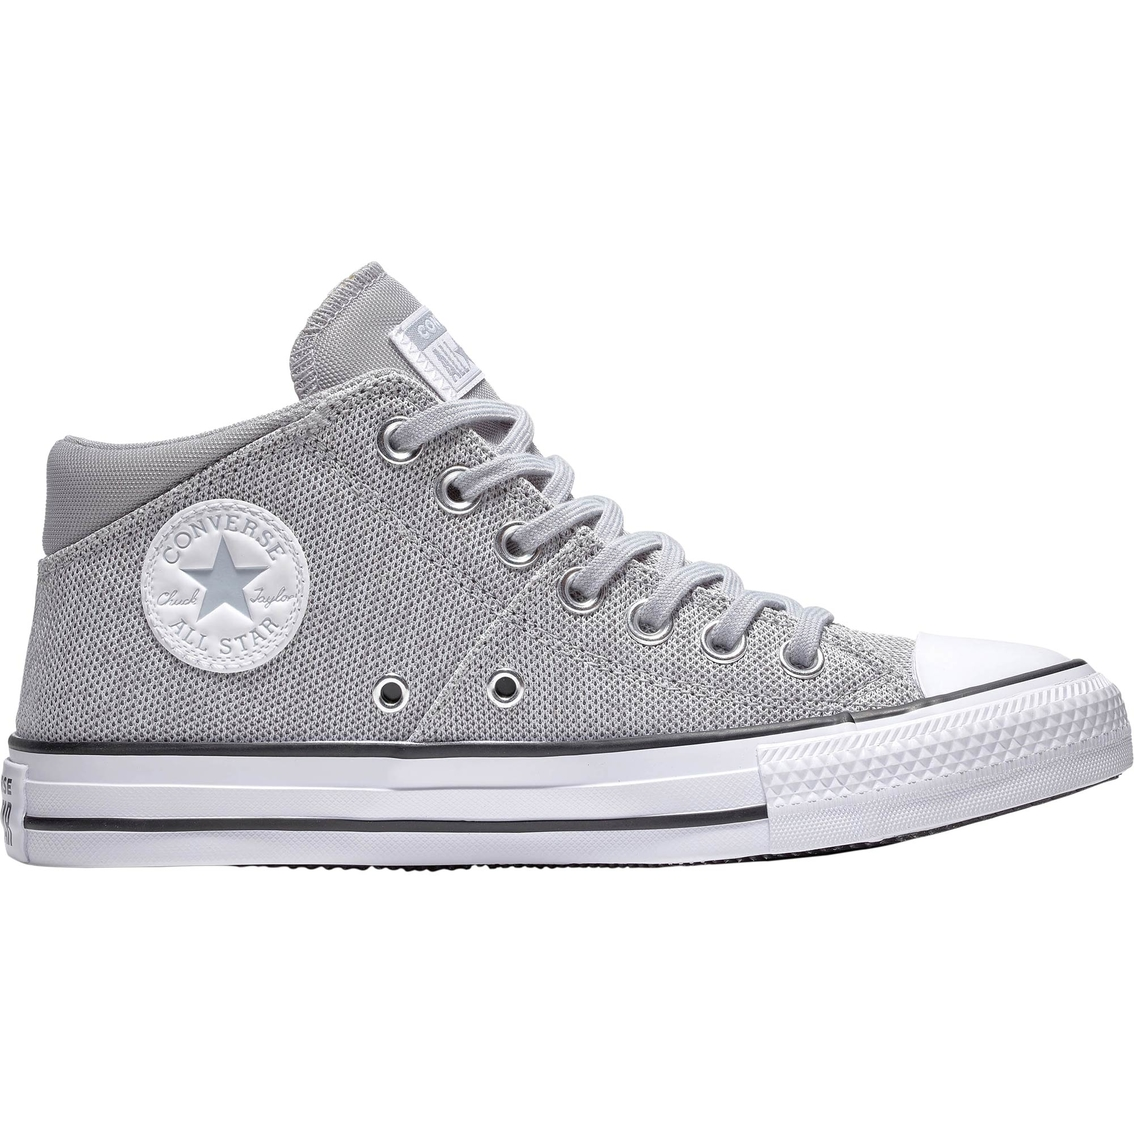 ccb16ff5e8f63 Converse Chuck Taylor All Star Madison Mid Sneakers